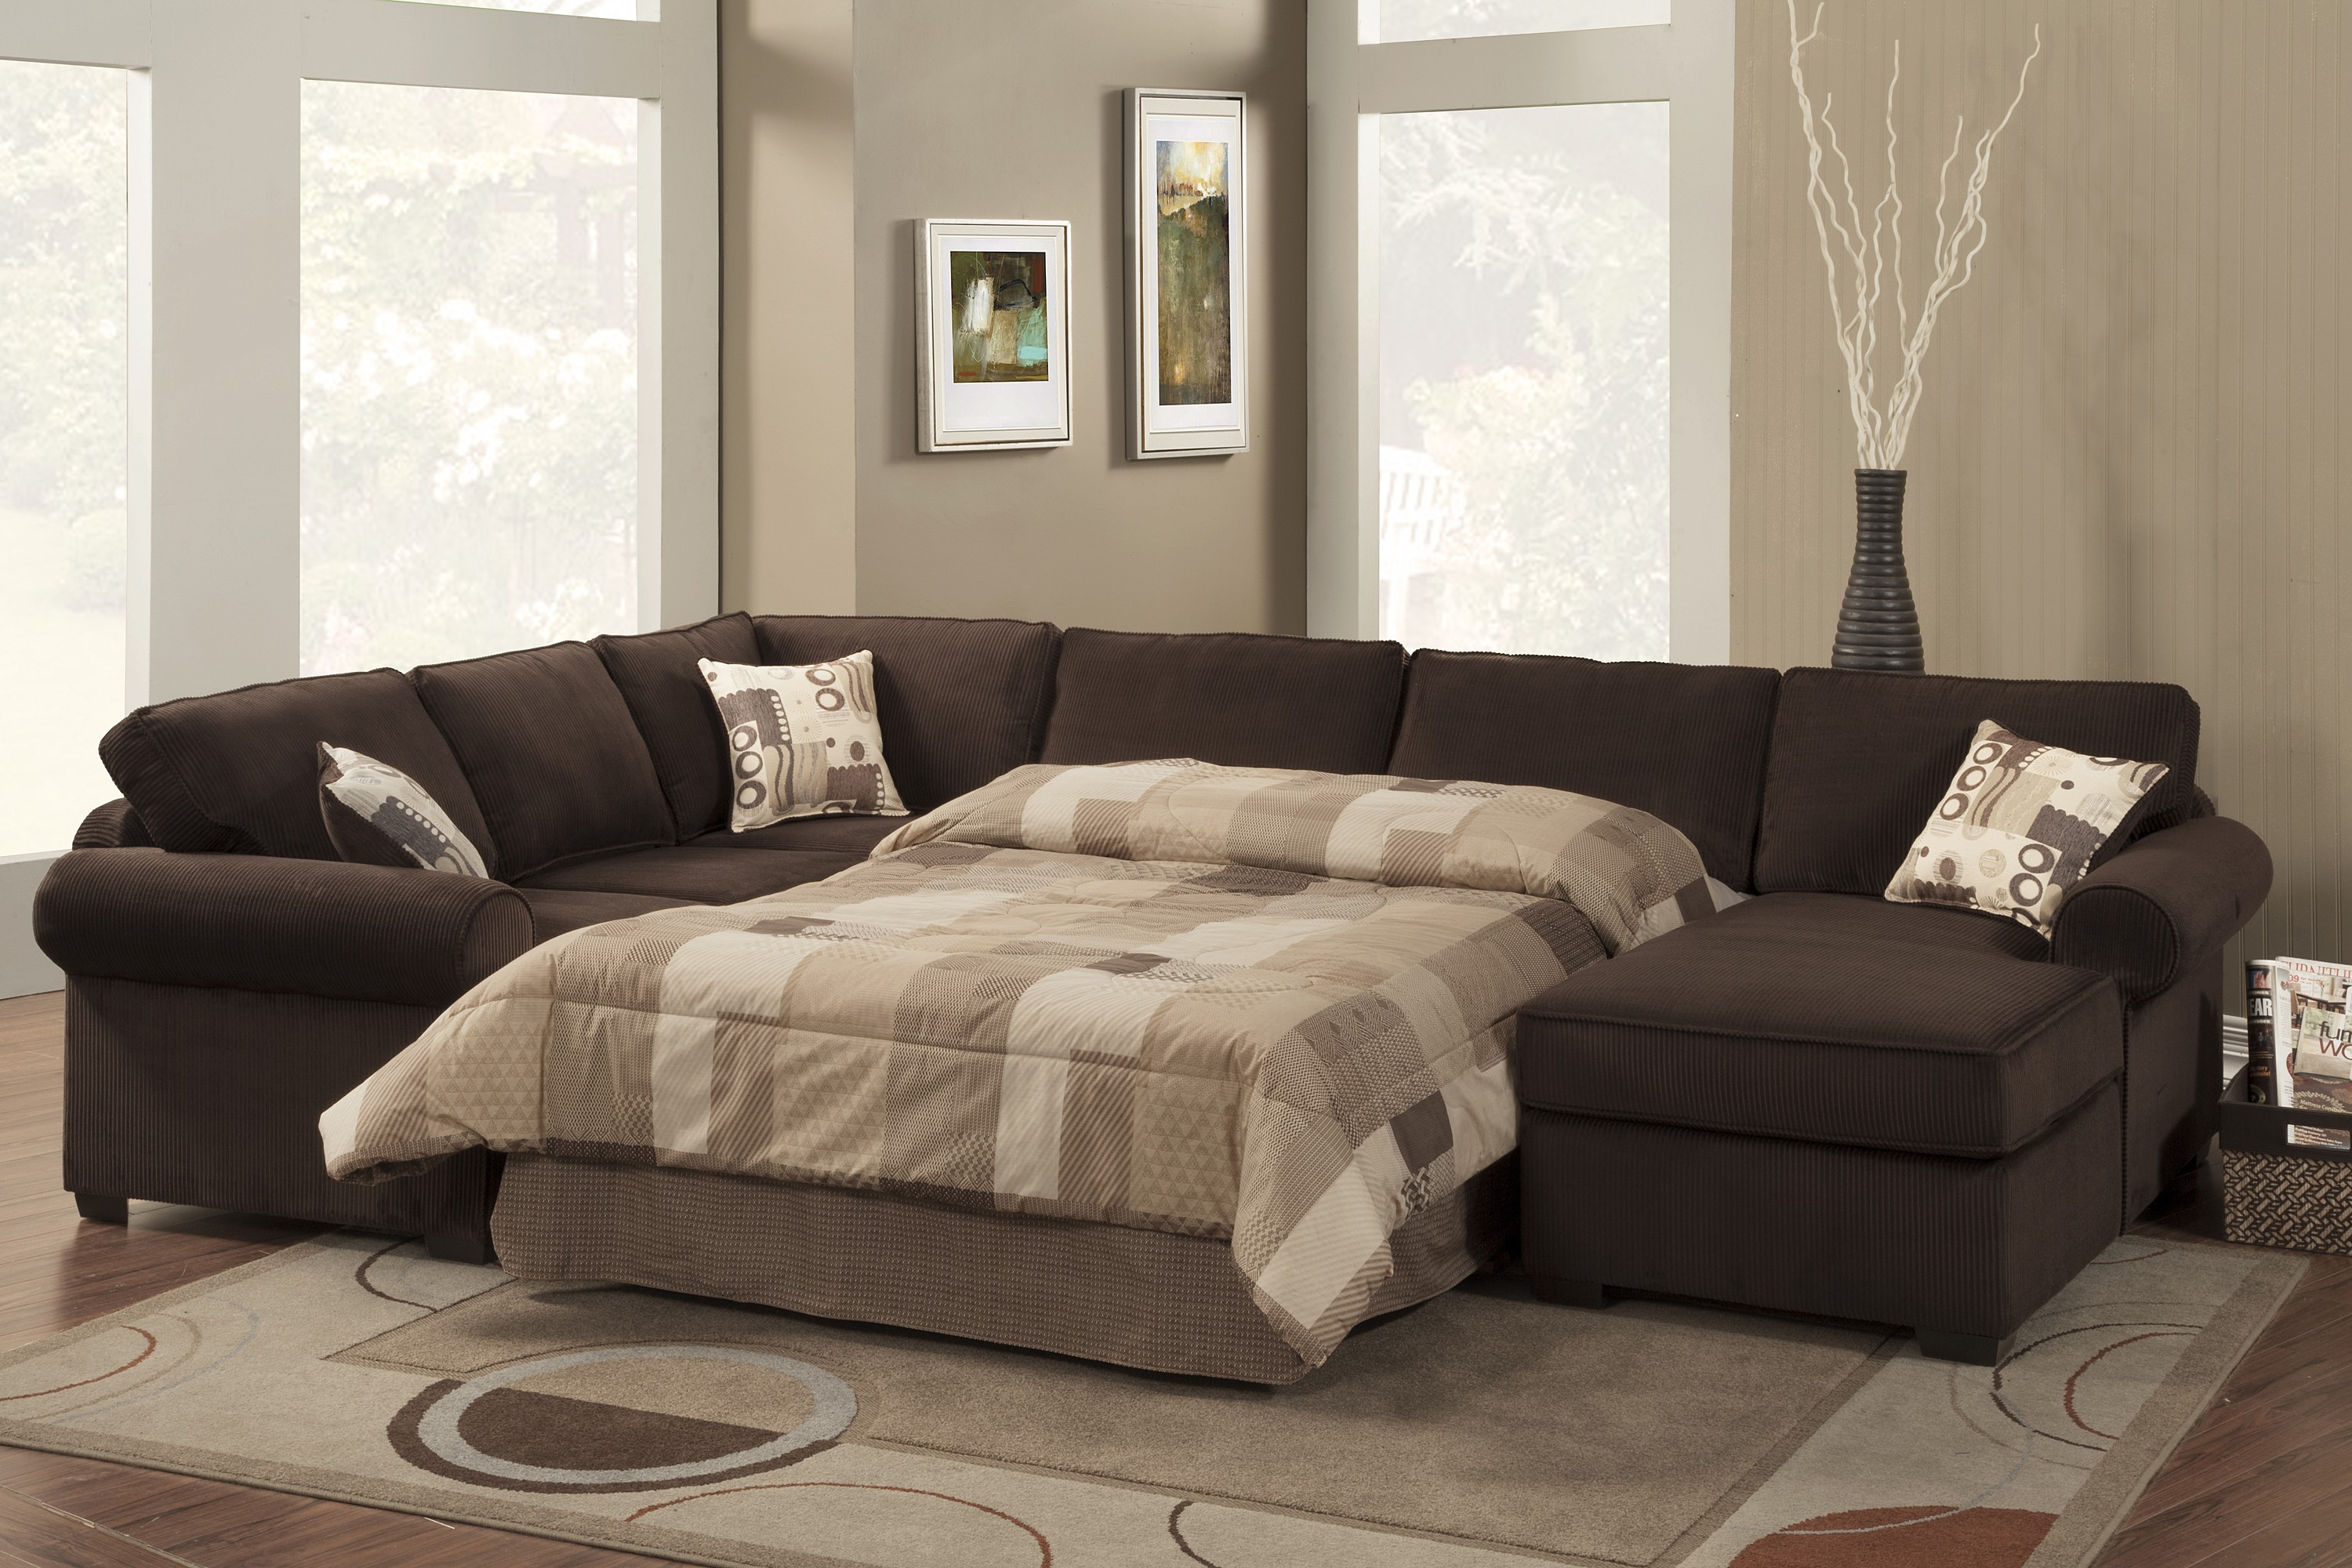 Sofa Bed Hotel Quality Sectional Sofa Sleepers For Better Sleep Quality And